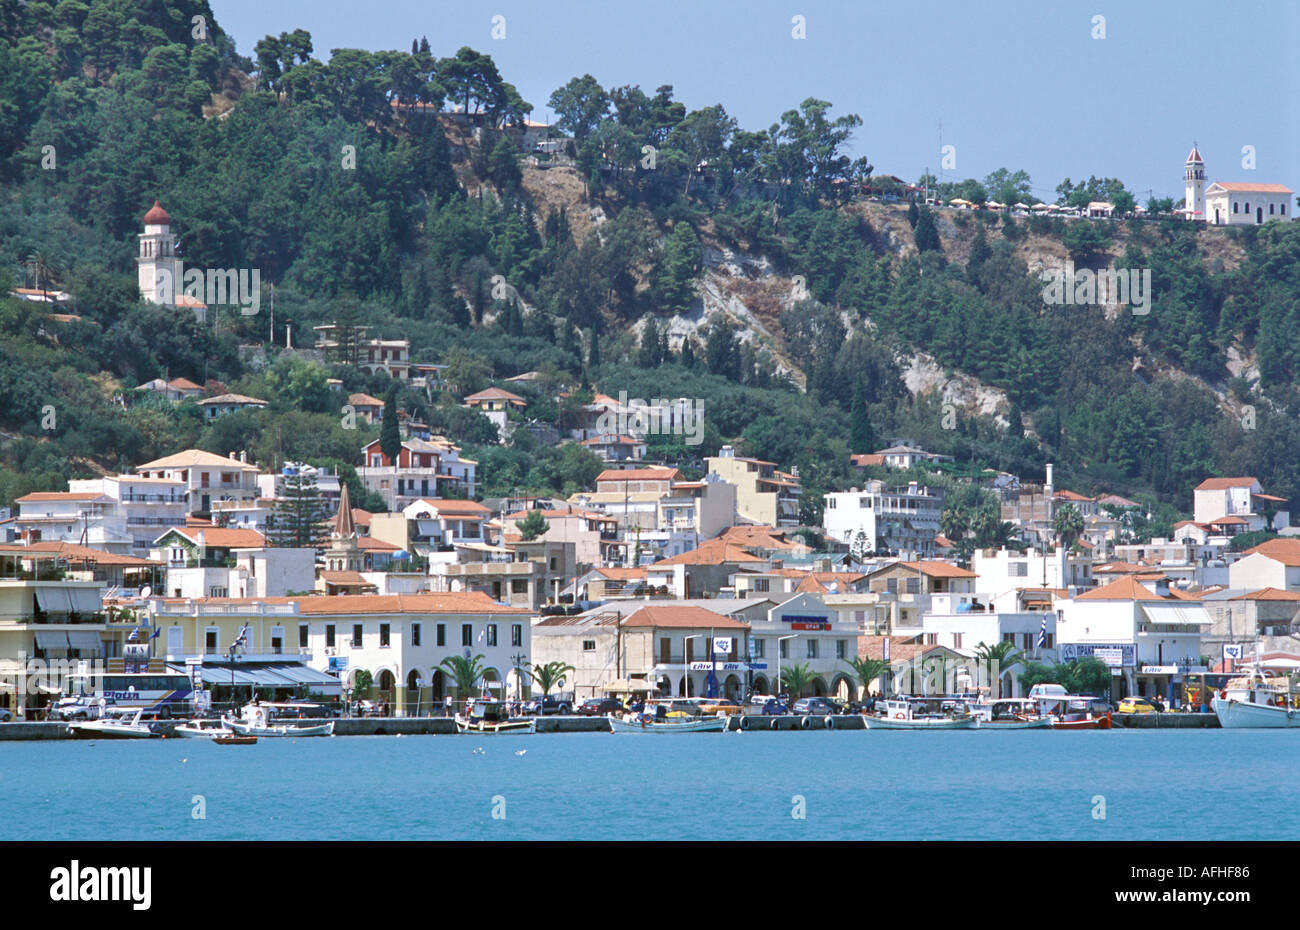 Zakynthos town waterfront viewed from a boat Zakynthos island also known as Zante Ionian Islands Greece Mediterranean Sea - Stock Image